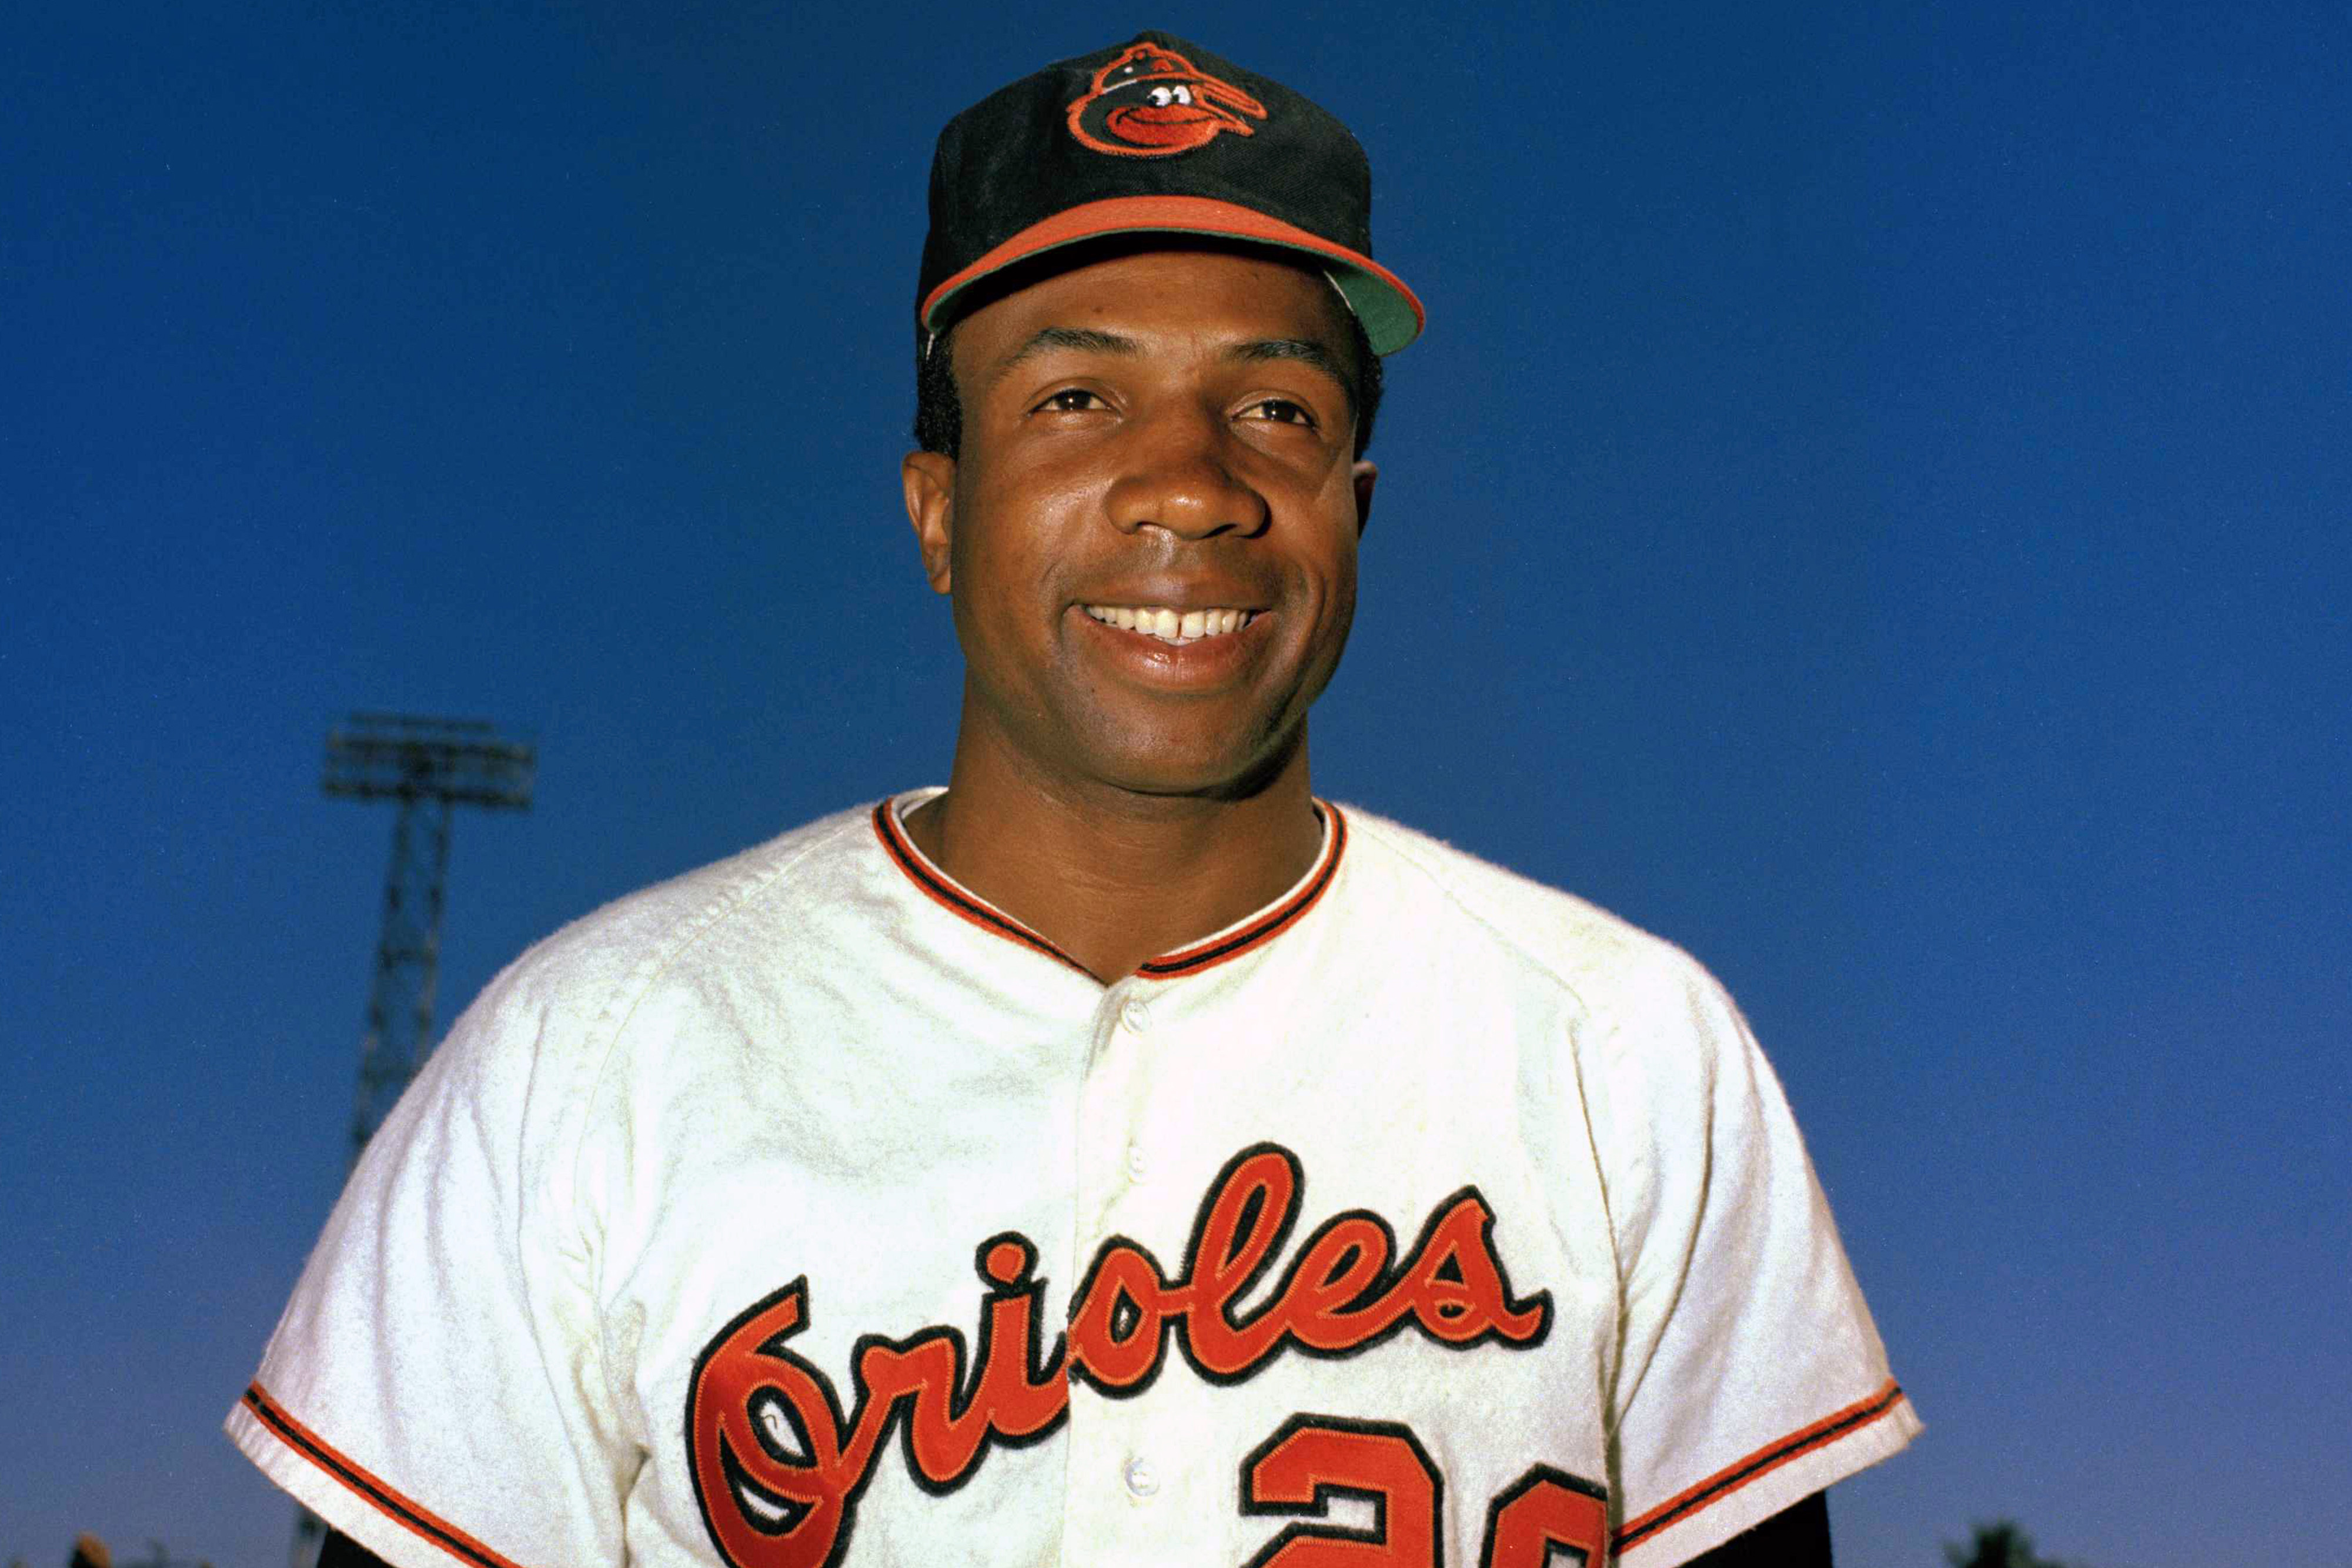 Frank Robinson First Black Mlb Manager Dies At 83 Las